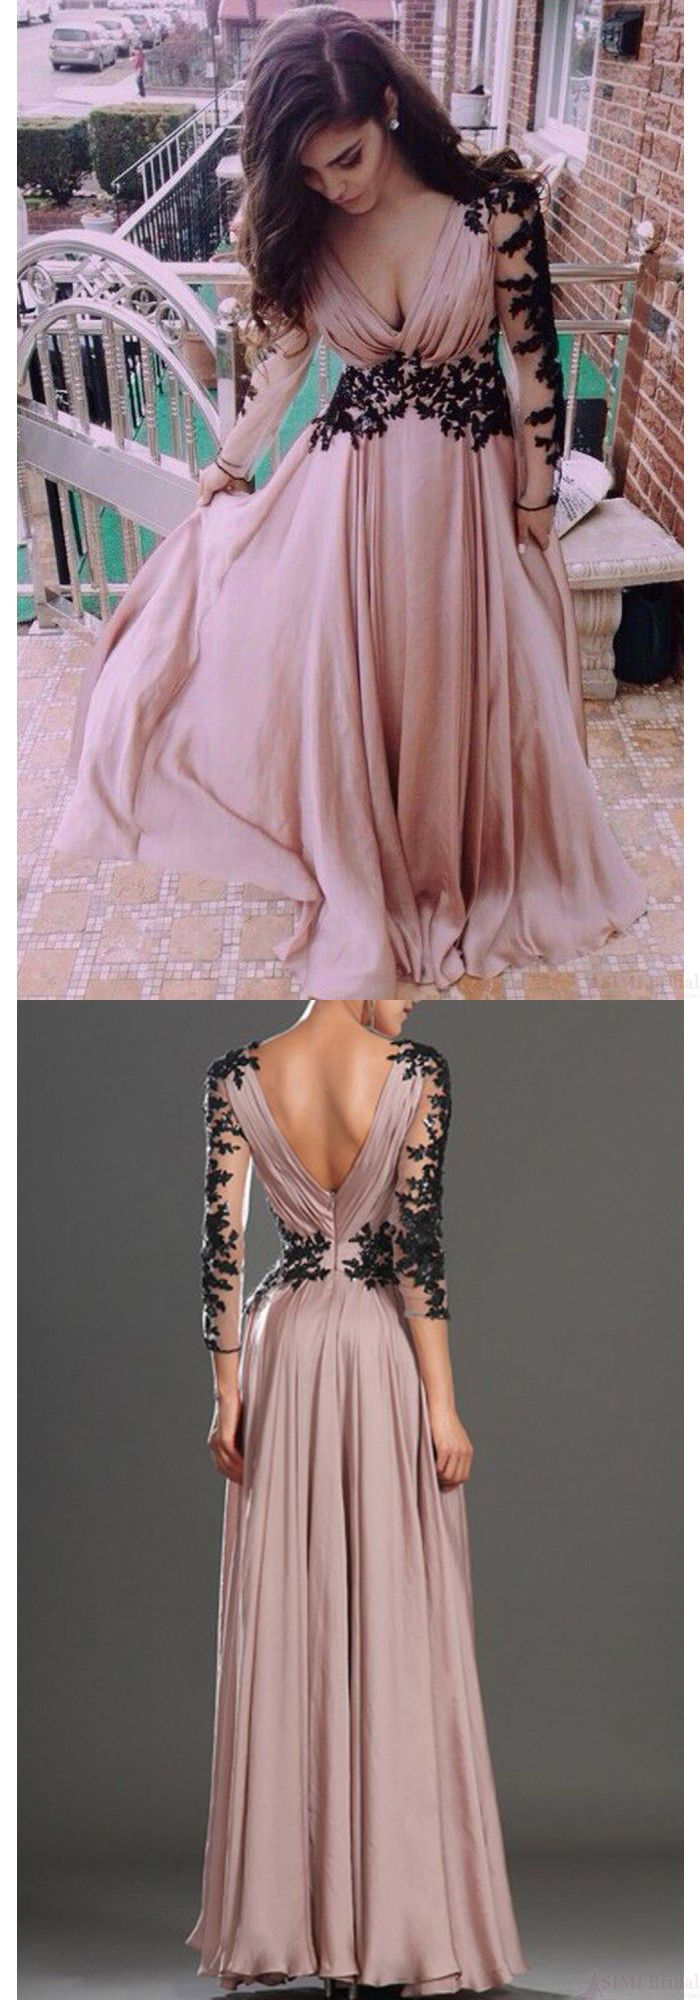 New arrival sexy vneck lace long sleeve prom gowns party evening